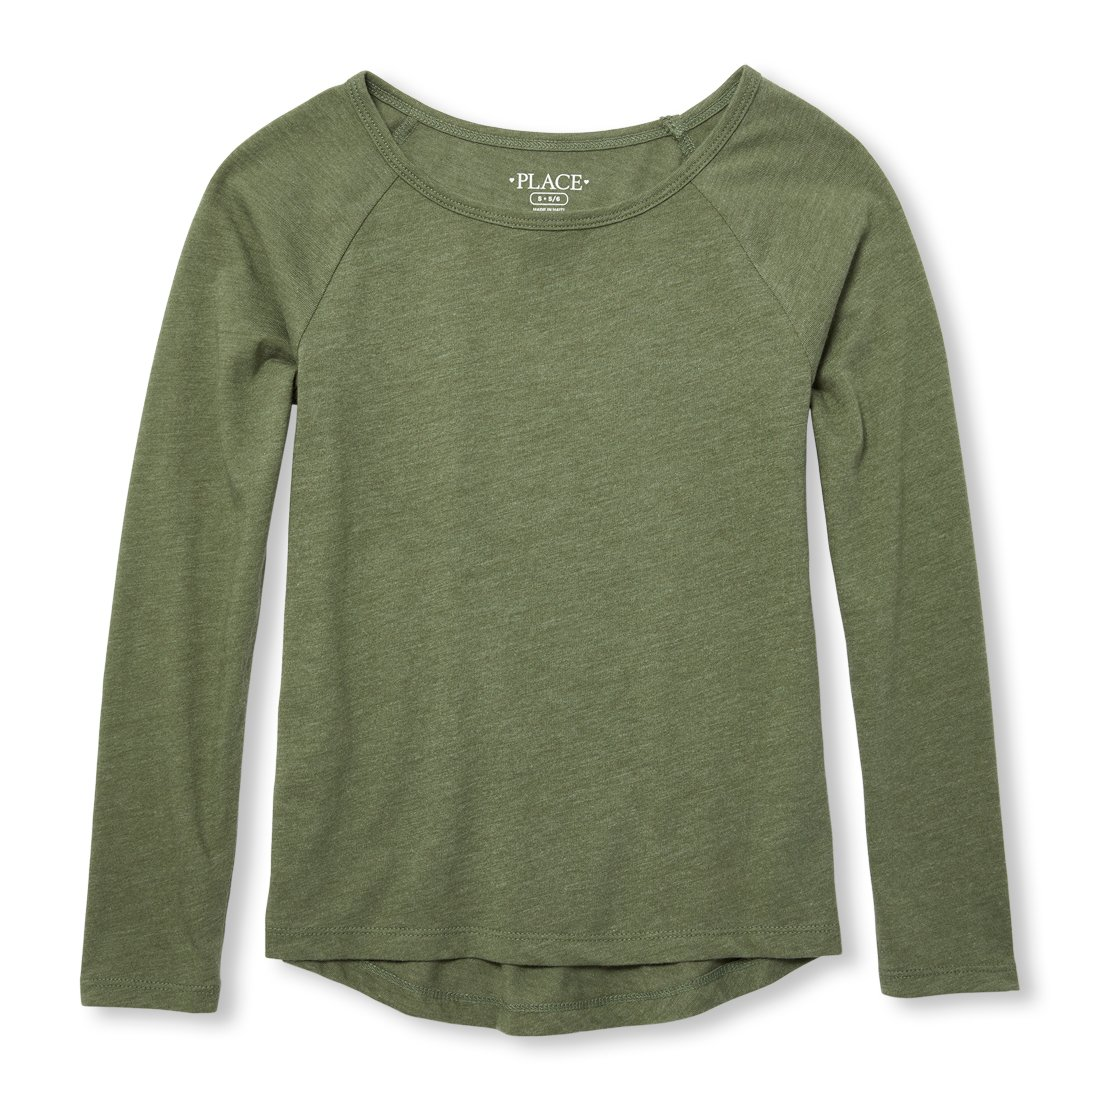 The Childrens Place Girls Basic Long Sleeve Layering Tee